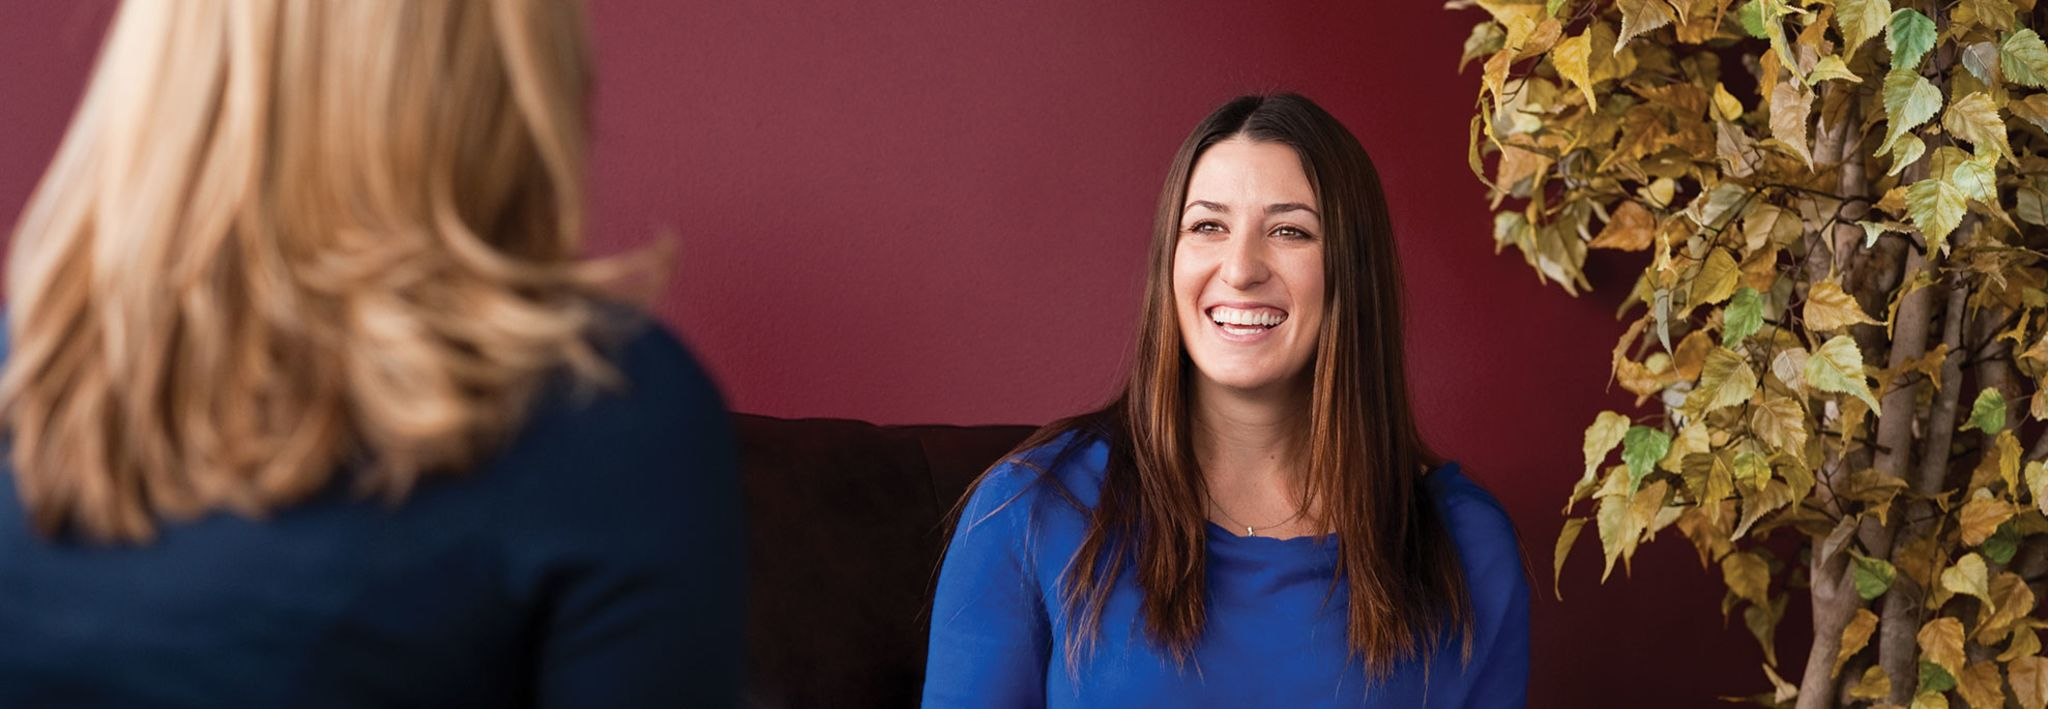 Colorado Christian University College of Adult and Graduate studies student at an interview.